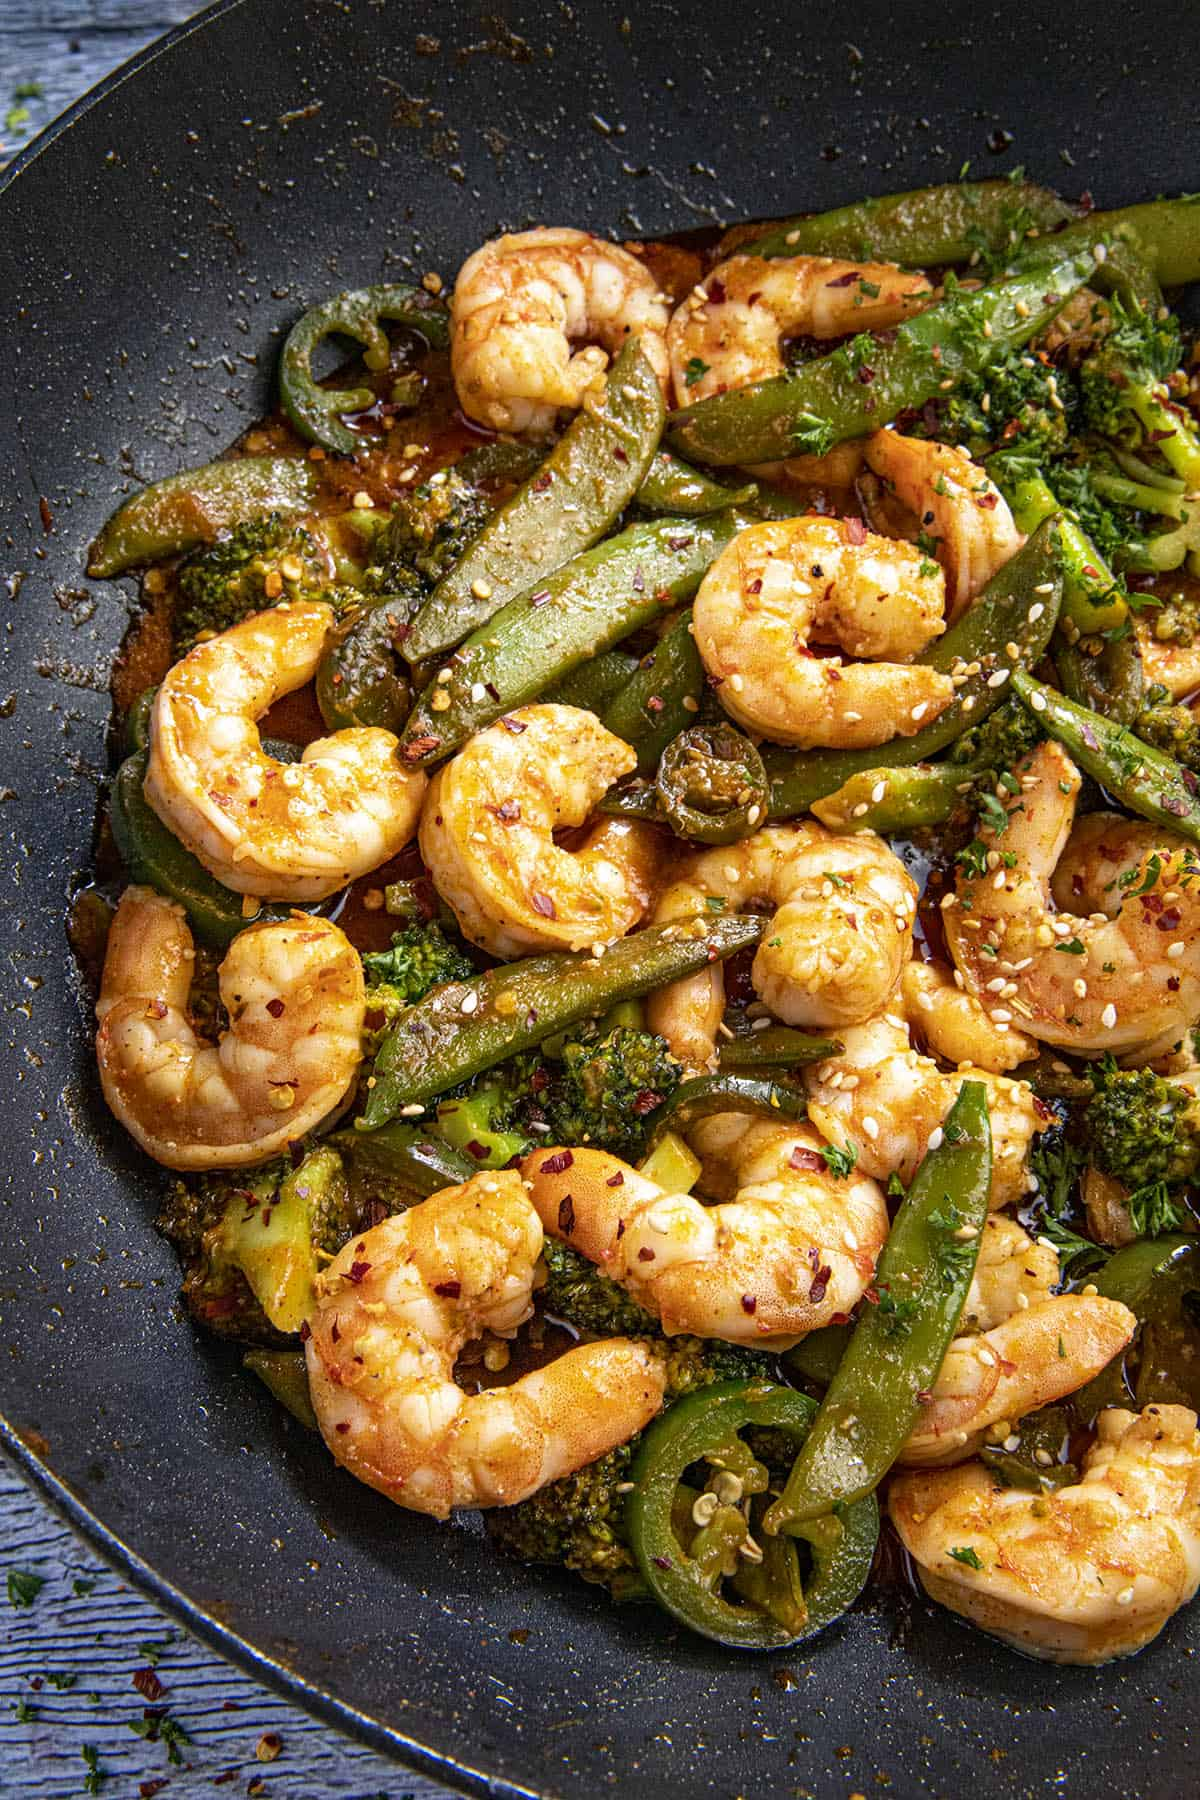 Spicy Shrimp Stir Fry Recipe in a wok